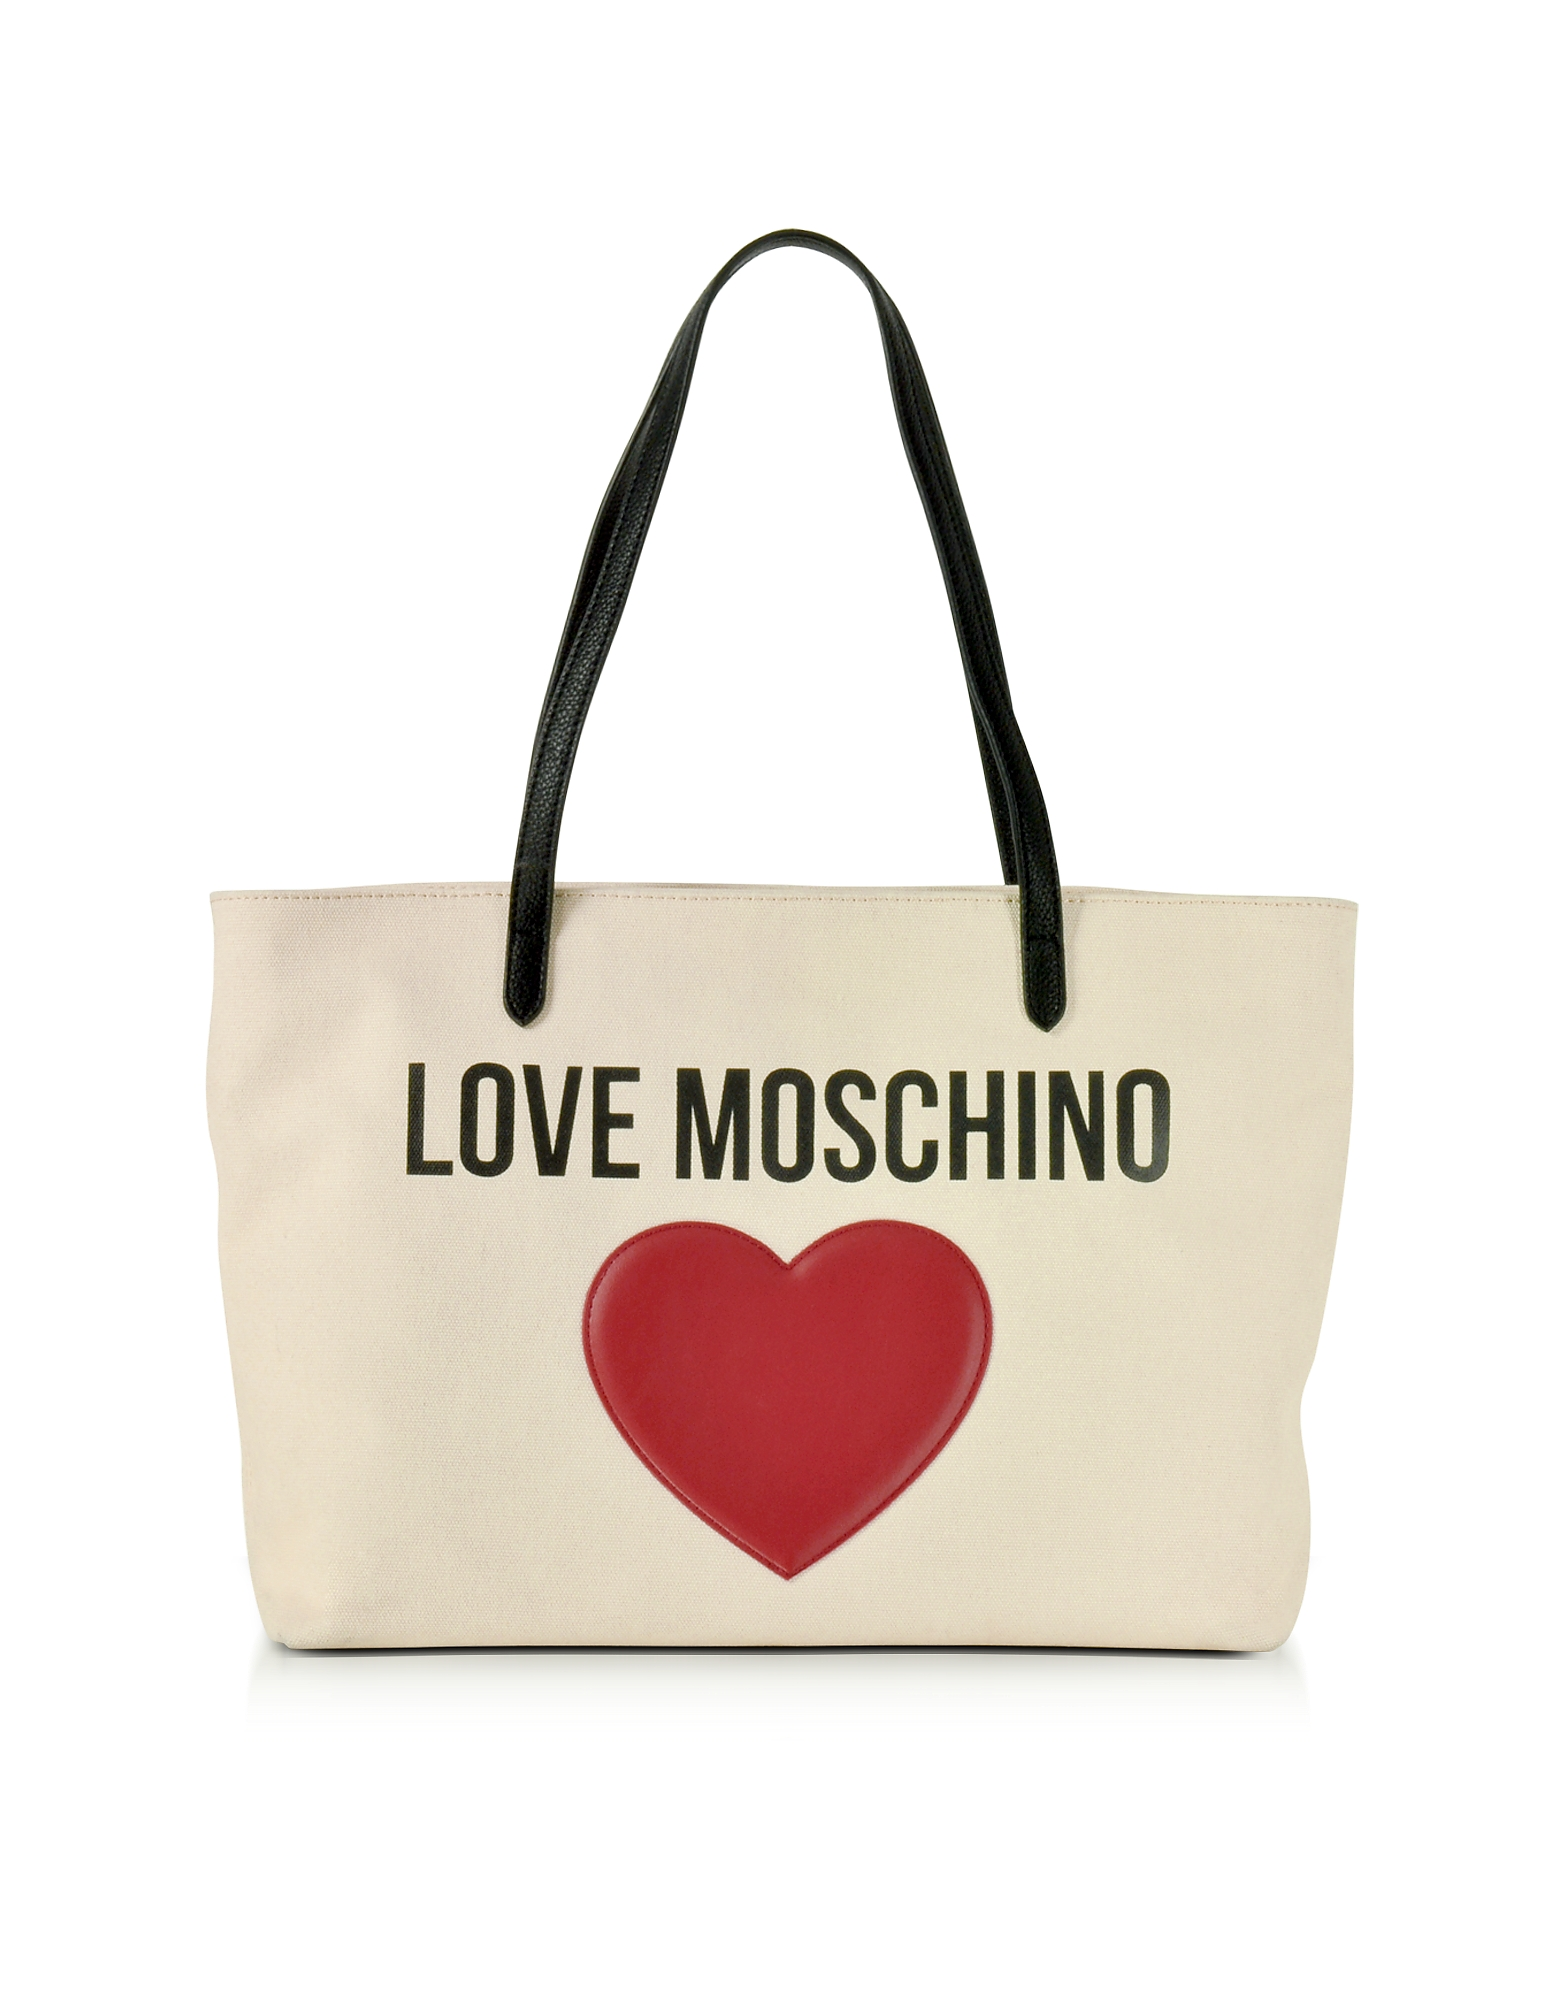 Love Moschino Handbags, Love Moschino & Heart Cotton Tote Bag